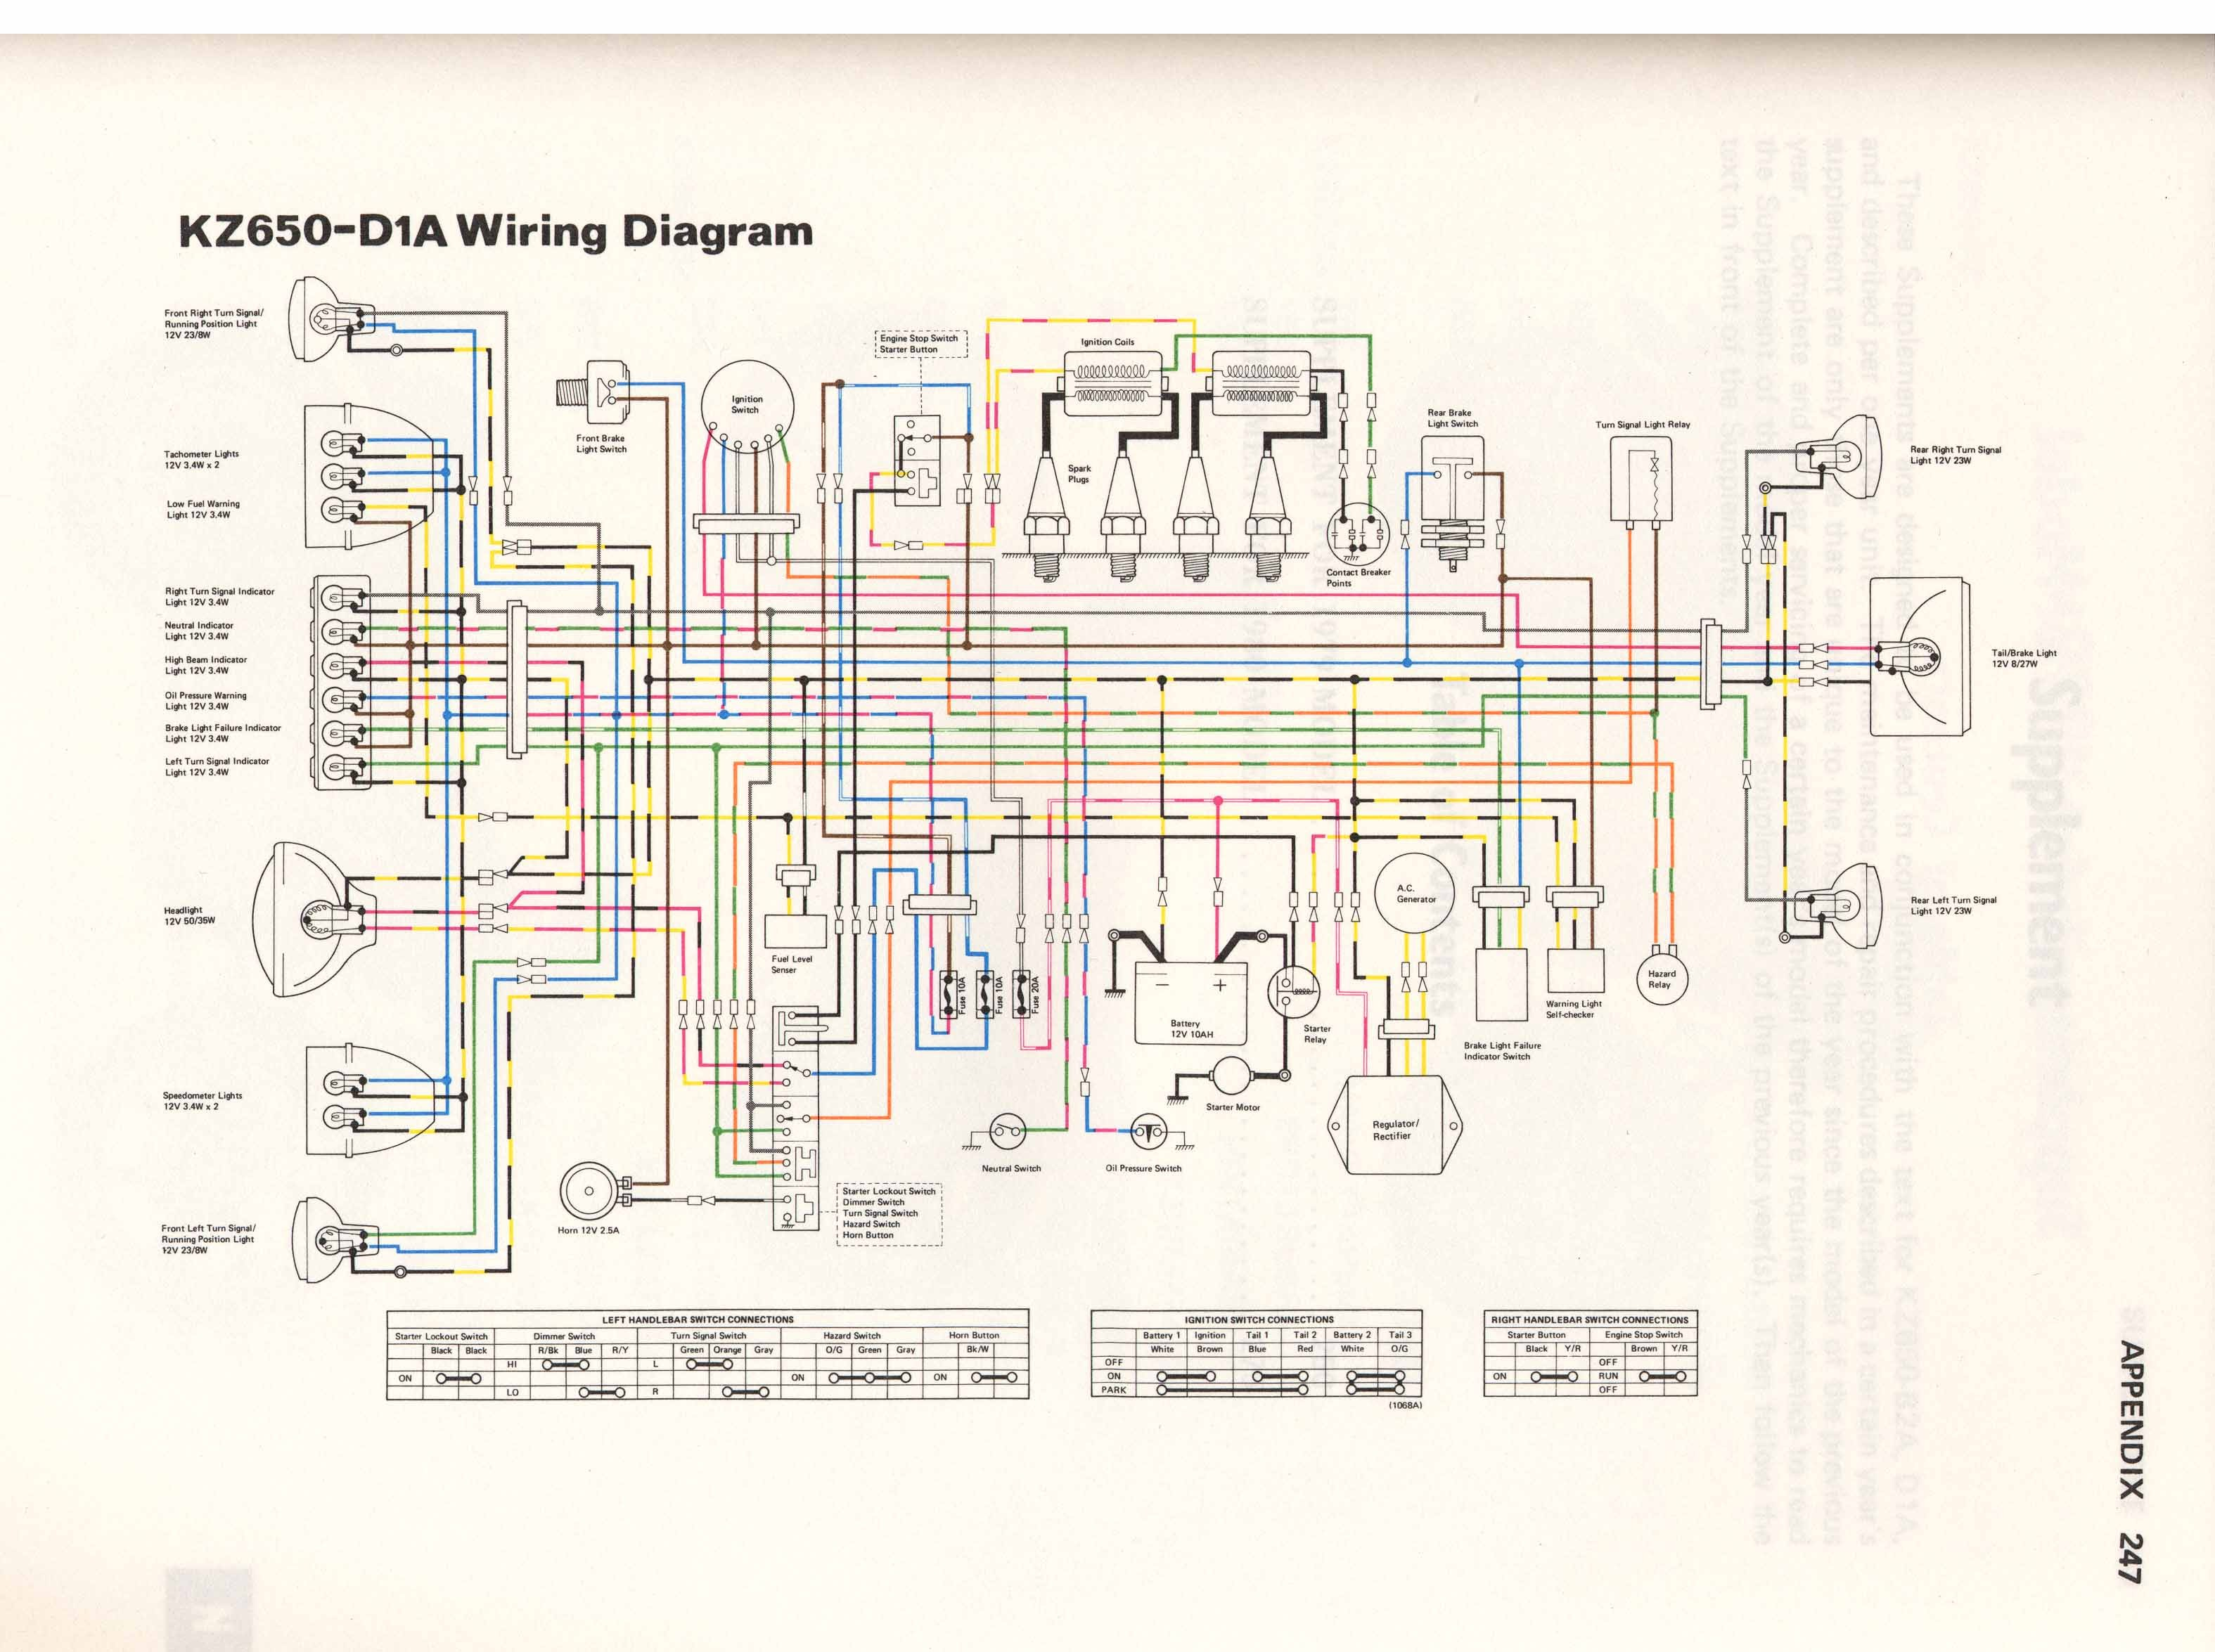 Zx9r E1 Wiring Diagram